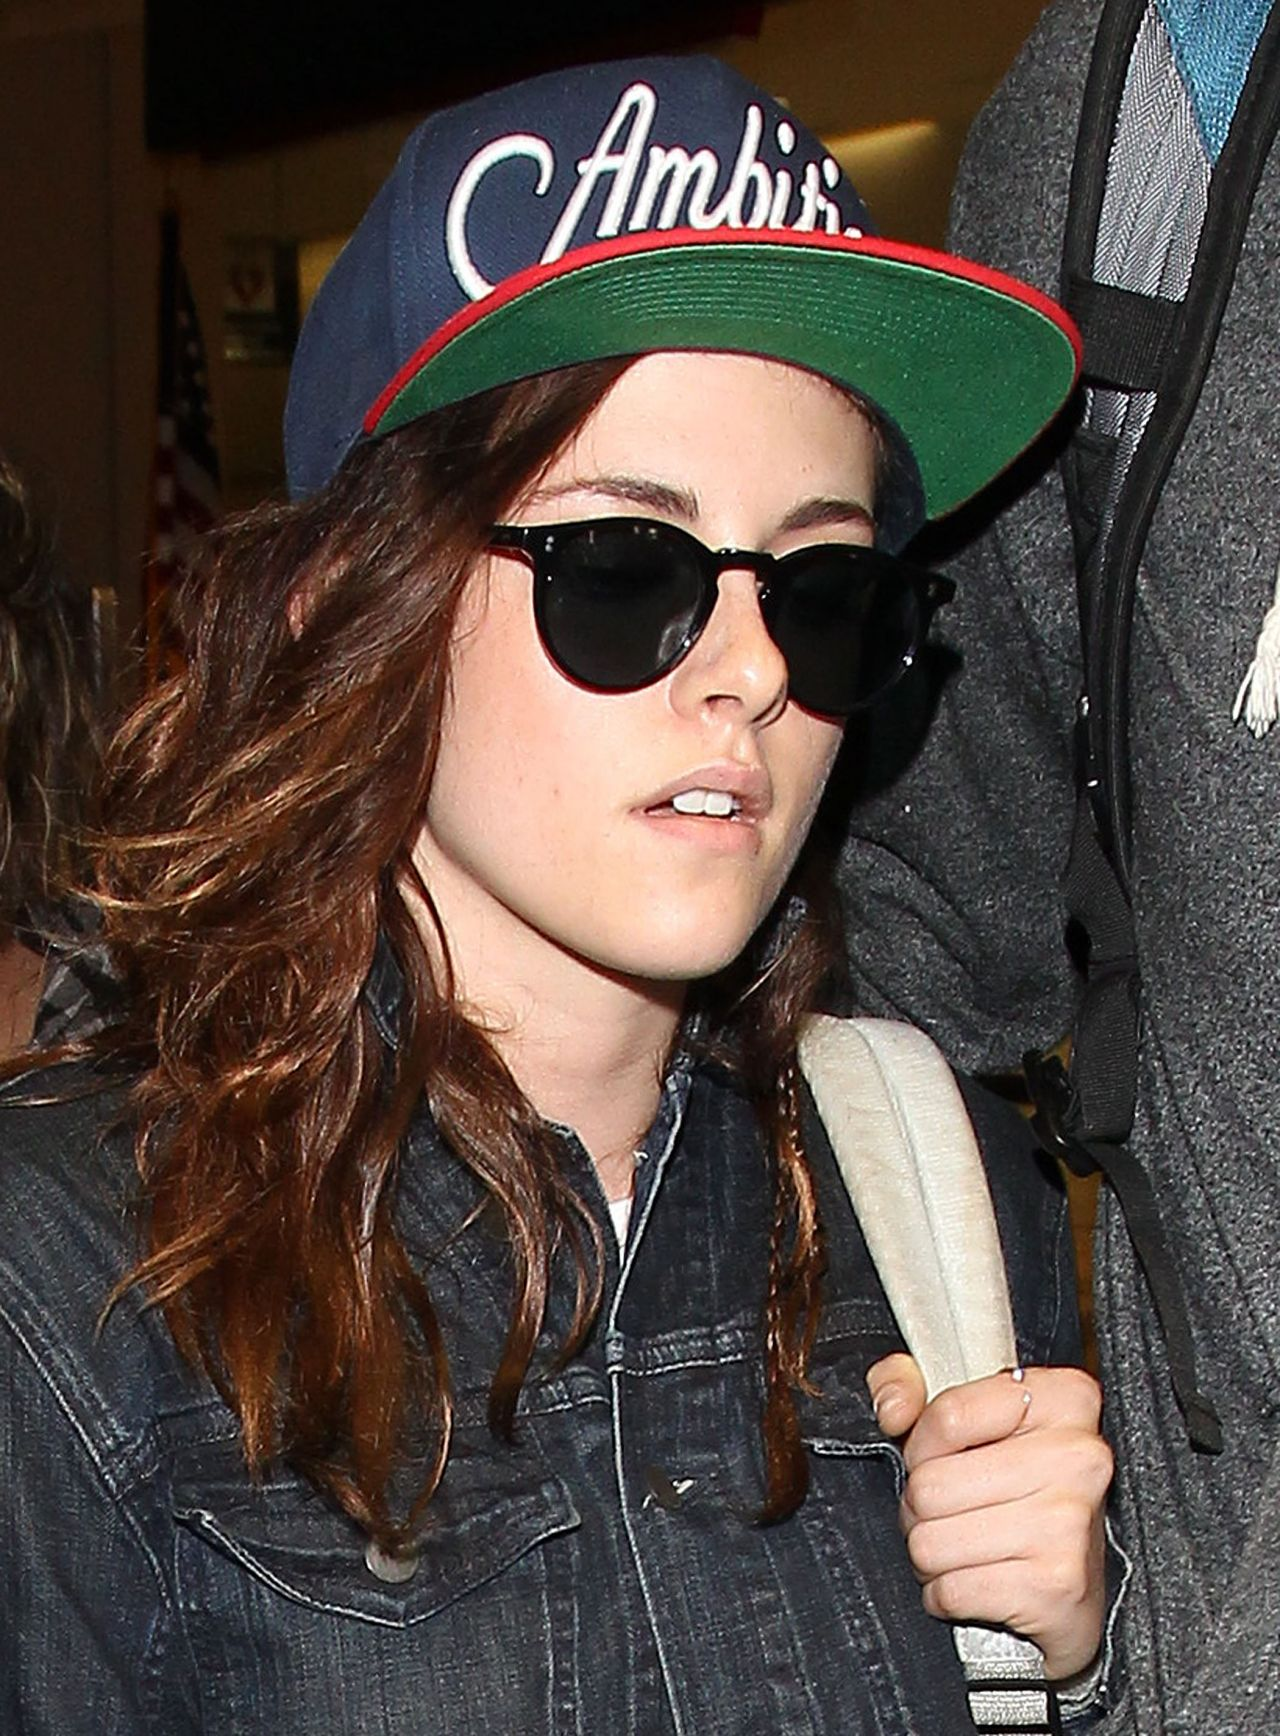 Kristen Stewart at LAX Airport, January 2014